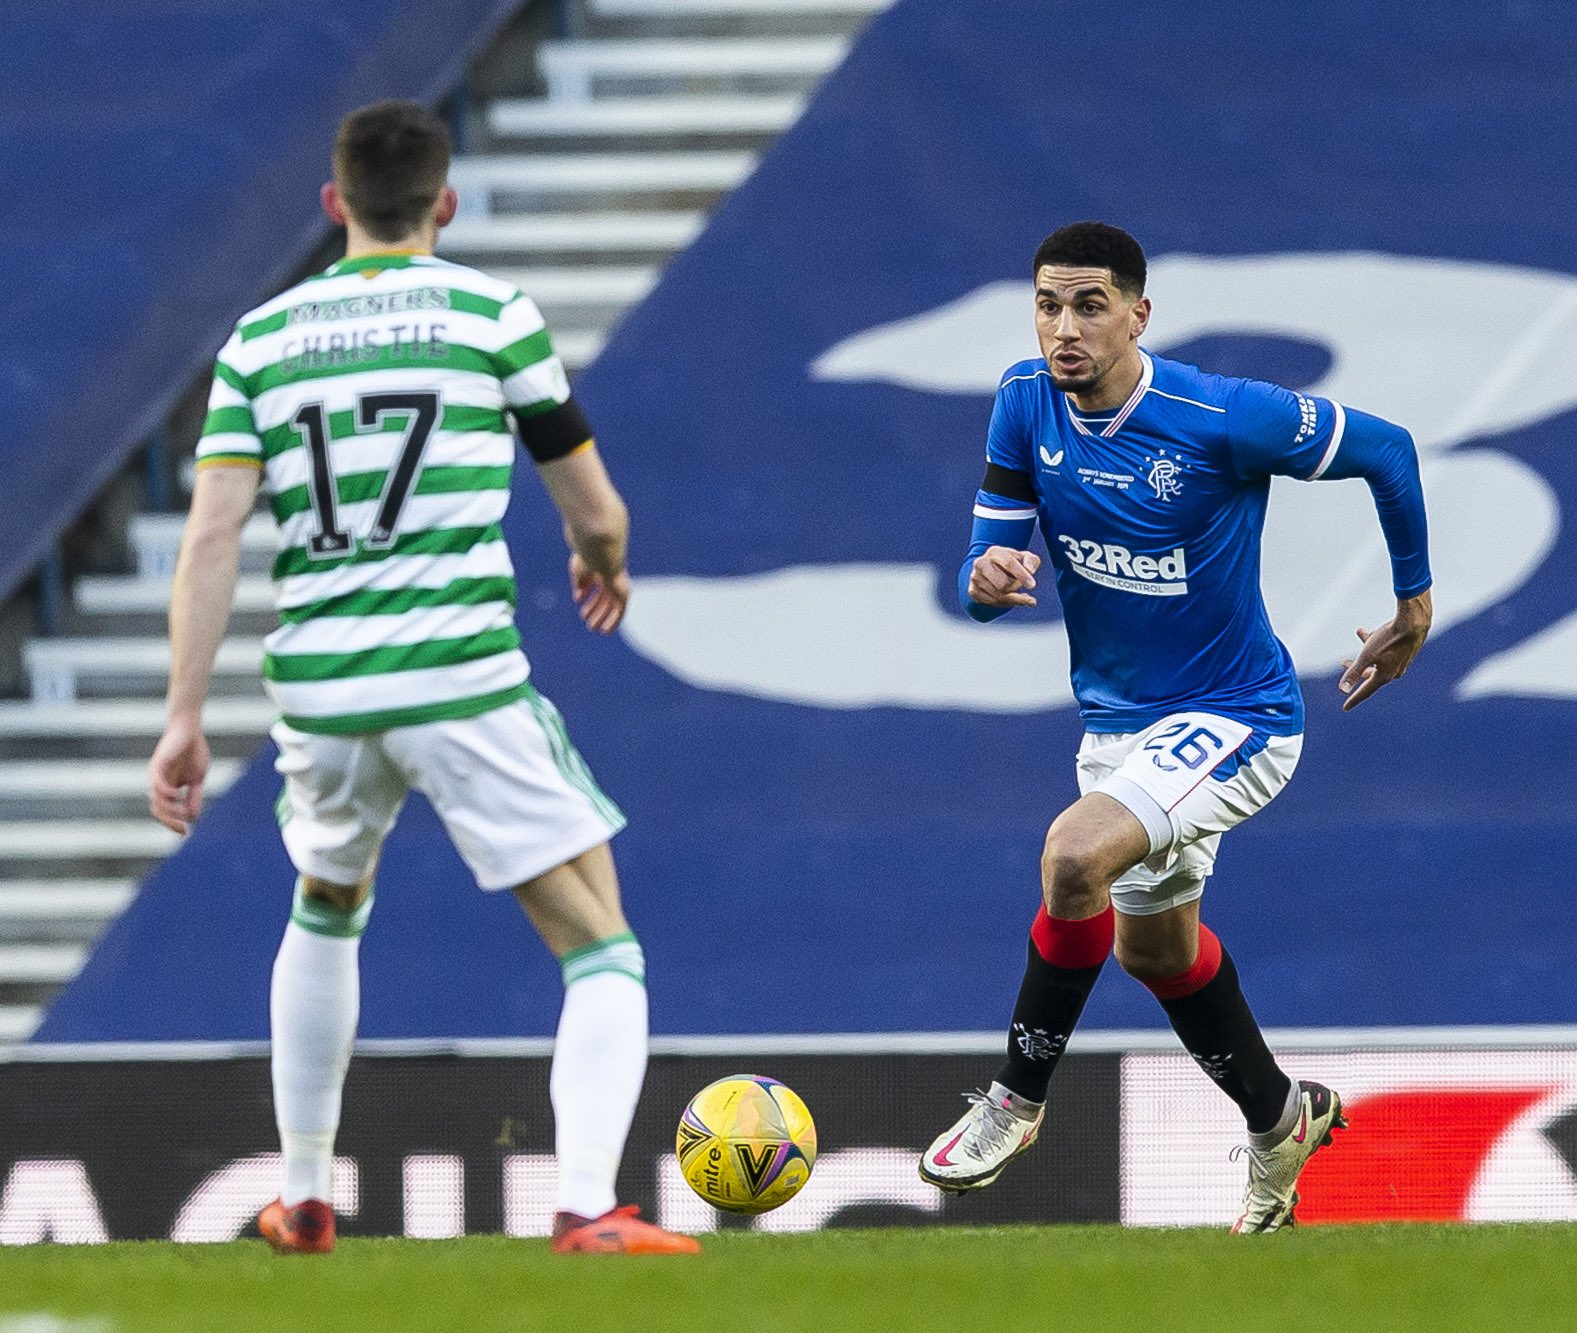 Balogun Thrilled To Give Rangers Fans 'Little Gift'  After Win Vs Celtic